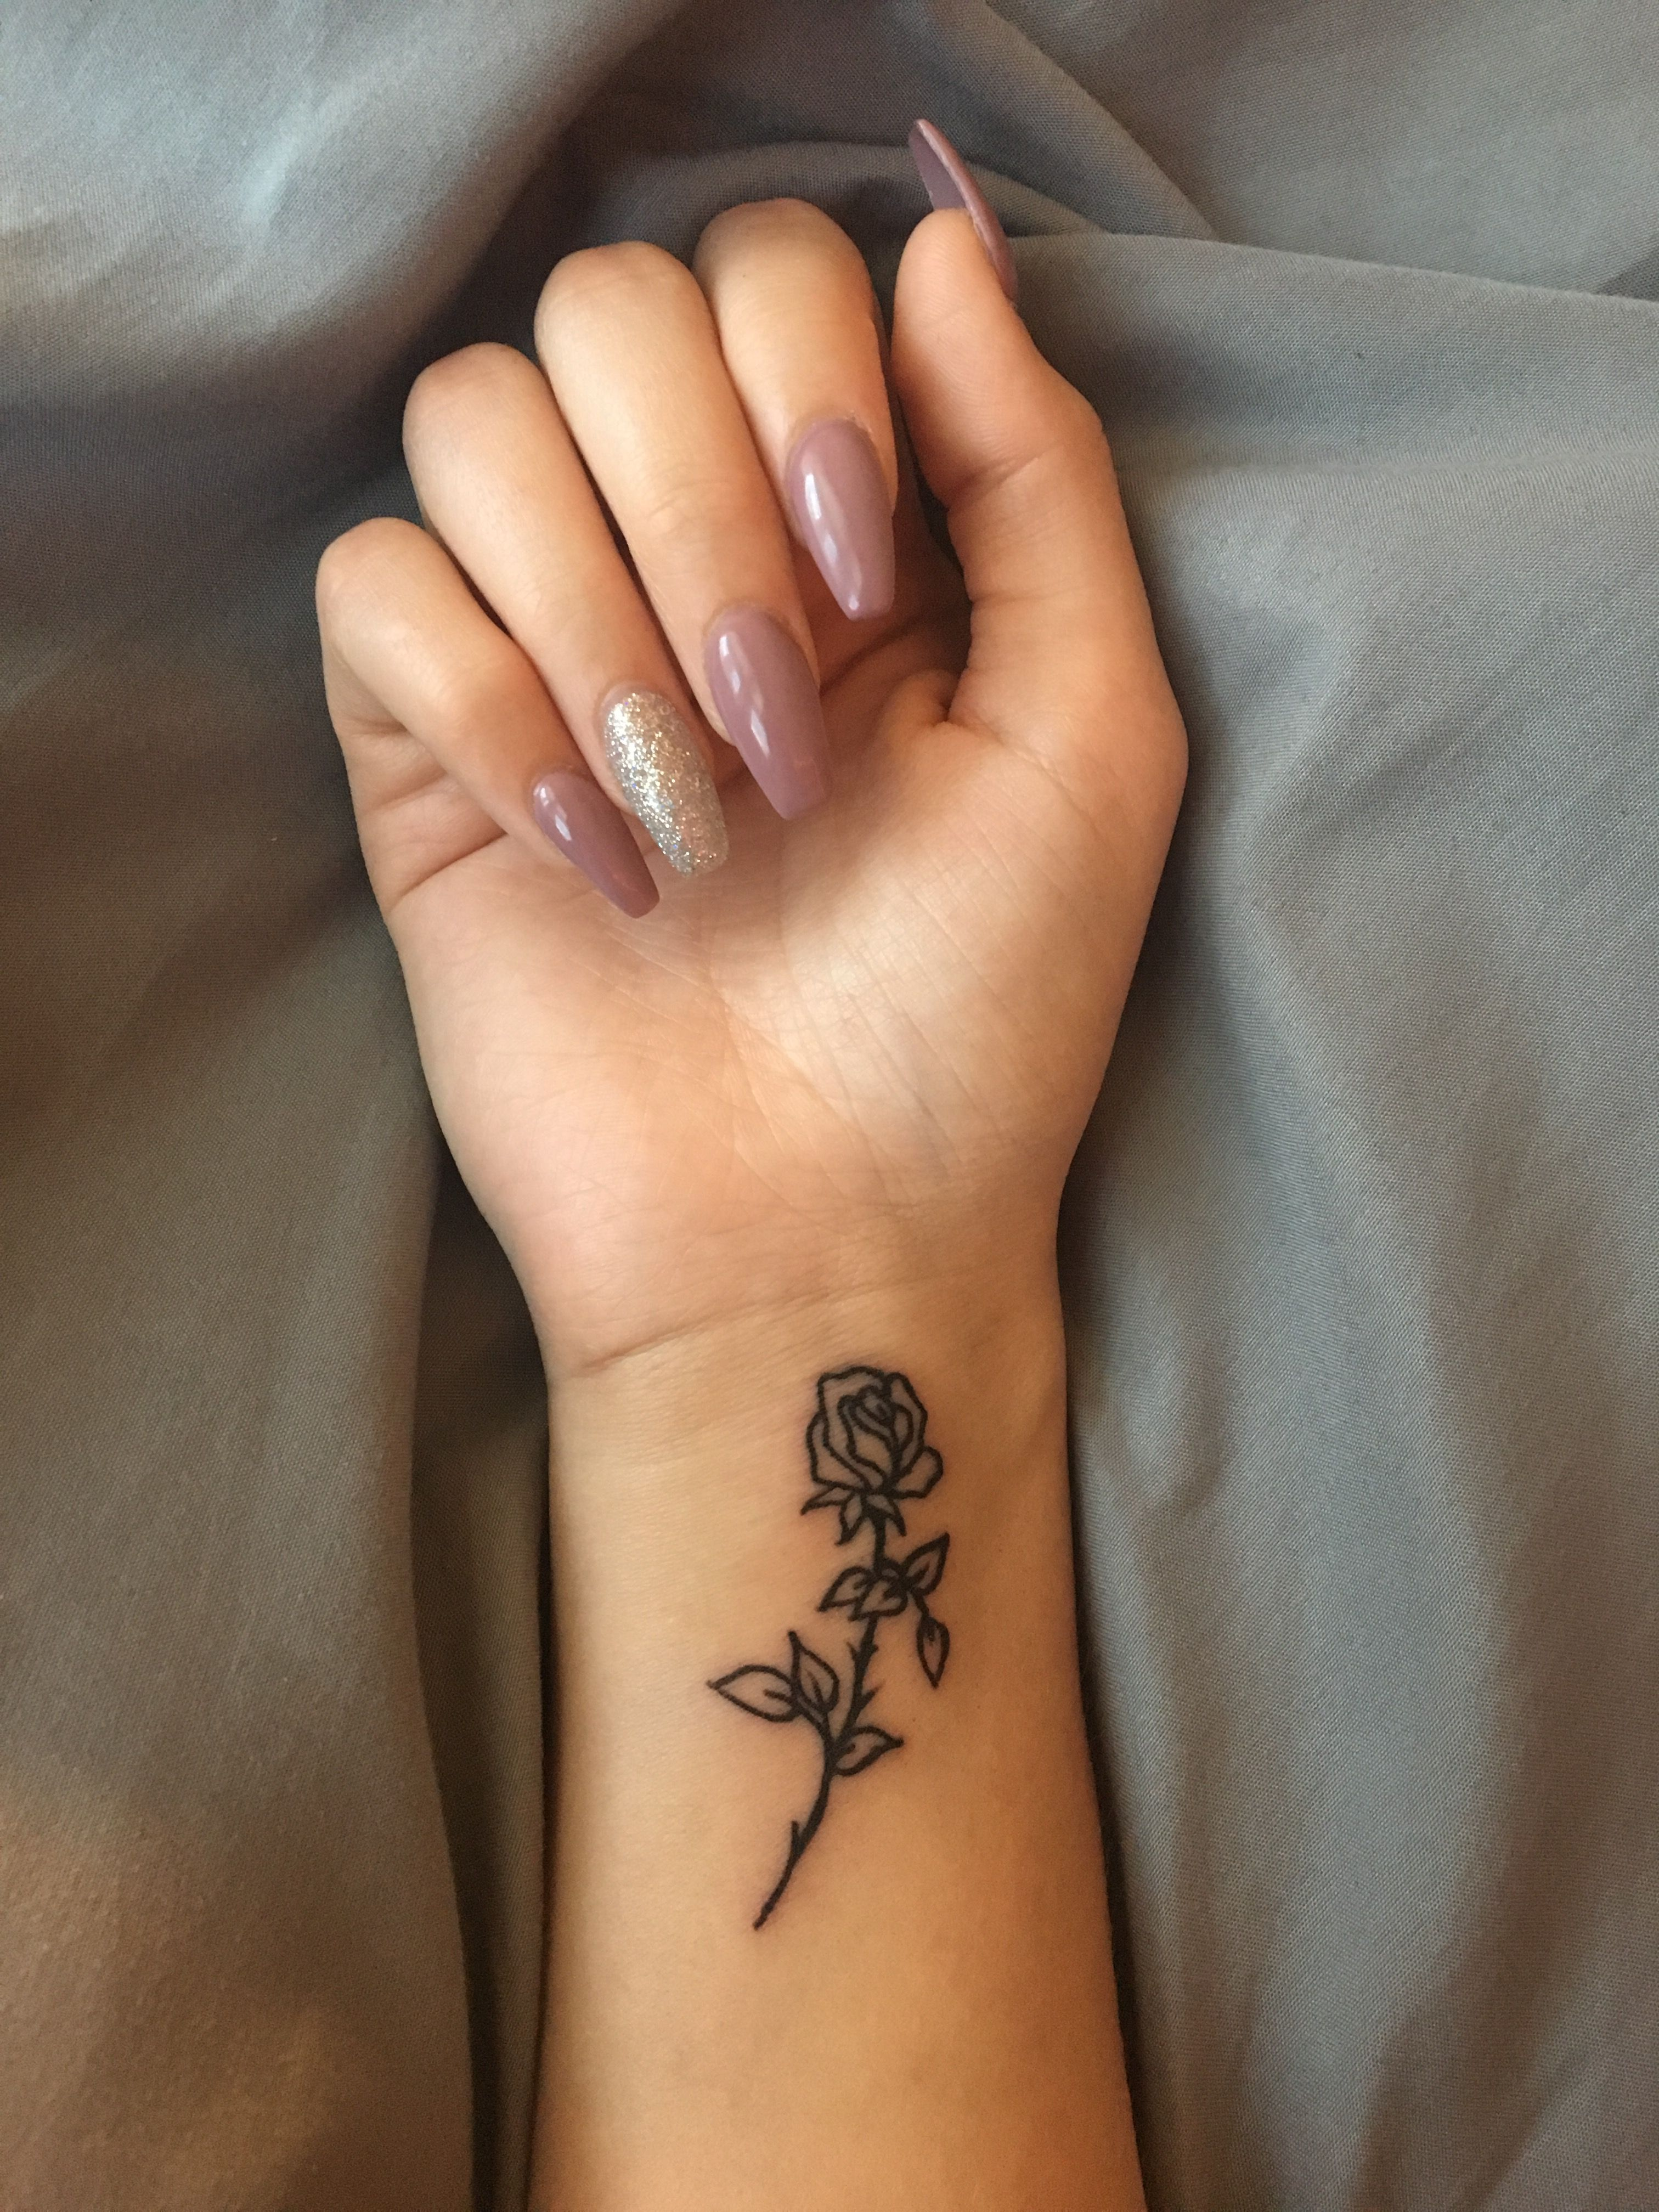 50+ Simple Tiny Small Rose Tattoo Ideas for Women